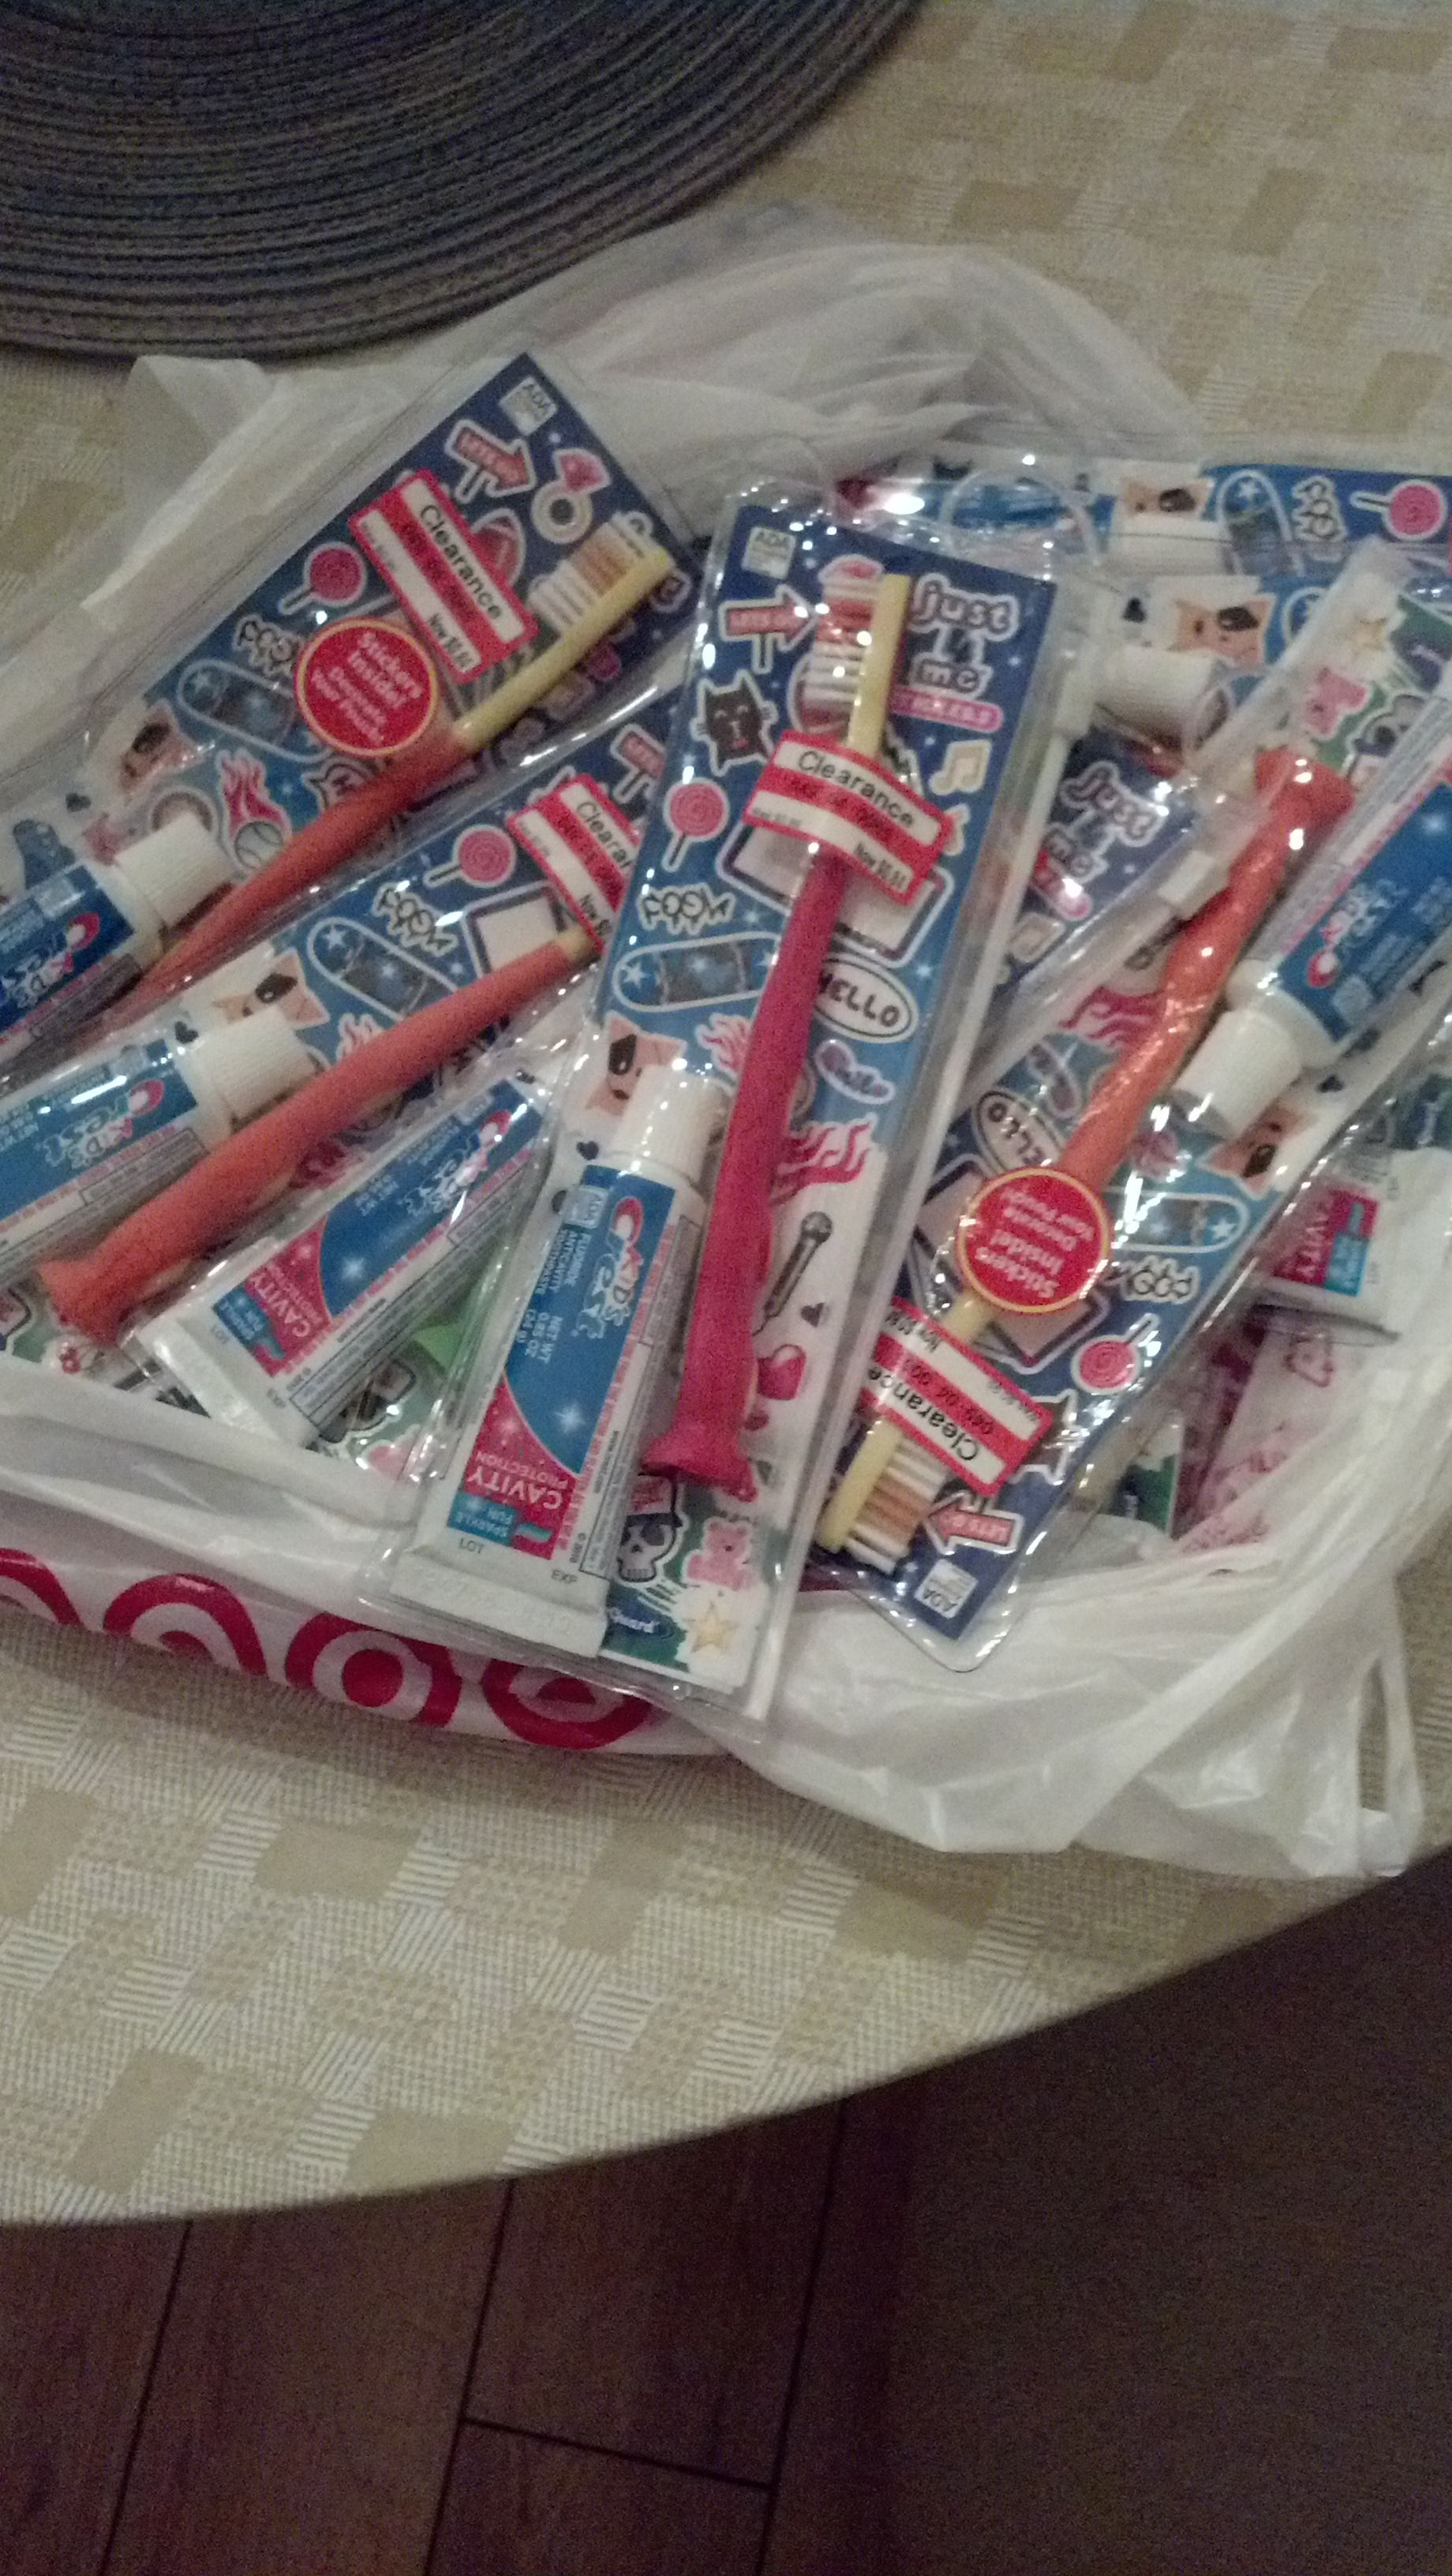 Found These At Target On Clearance Today 89 Cents Toothbrush,